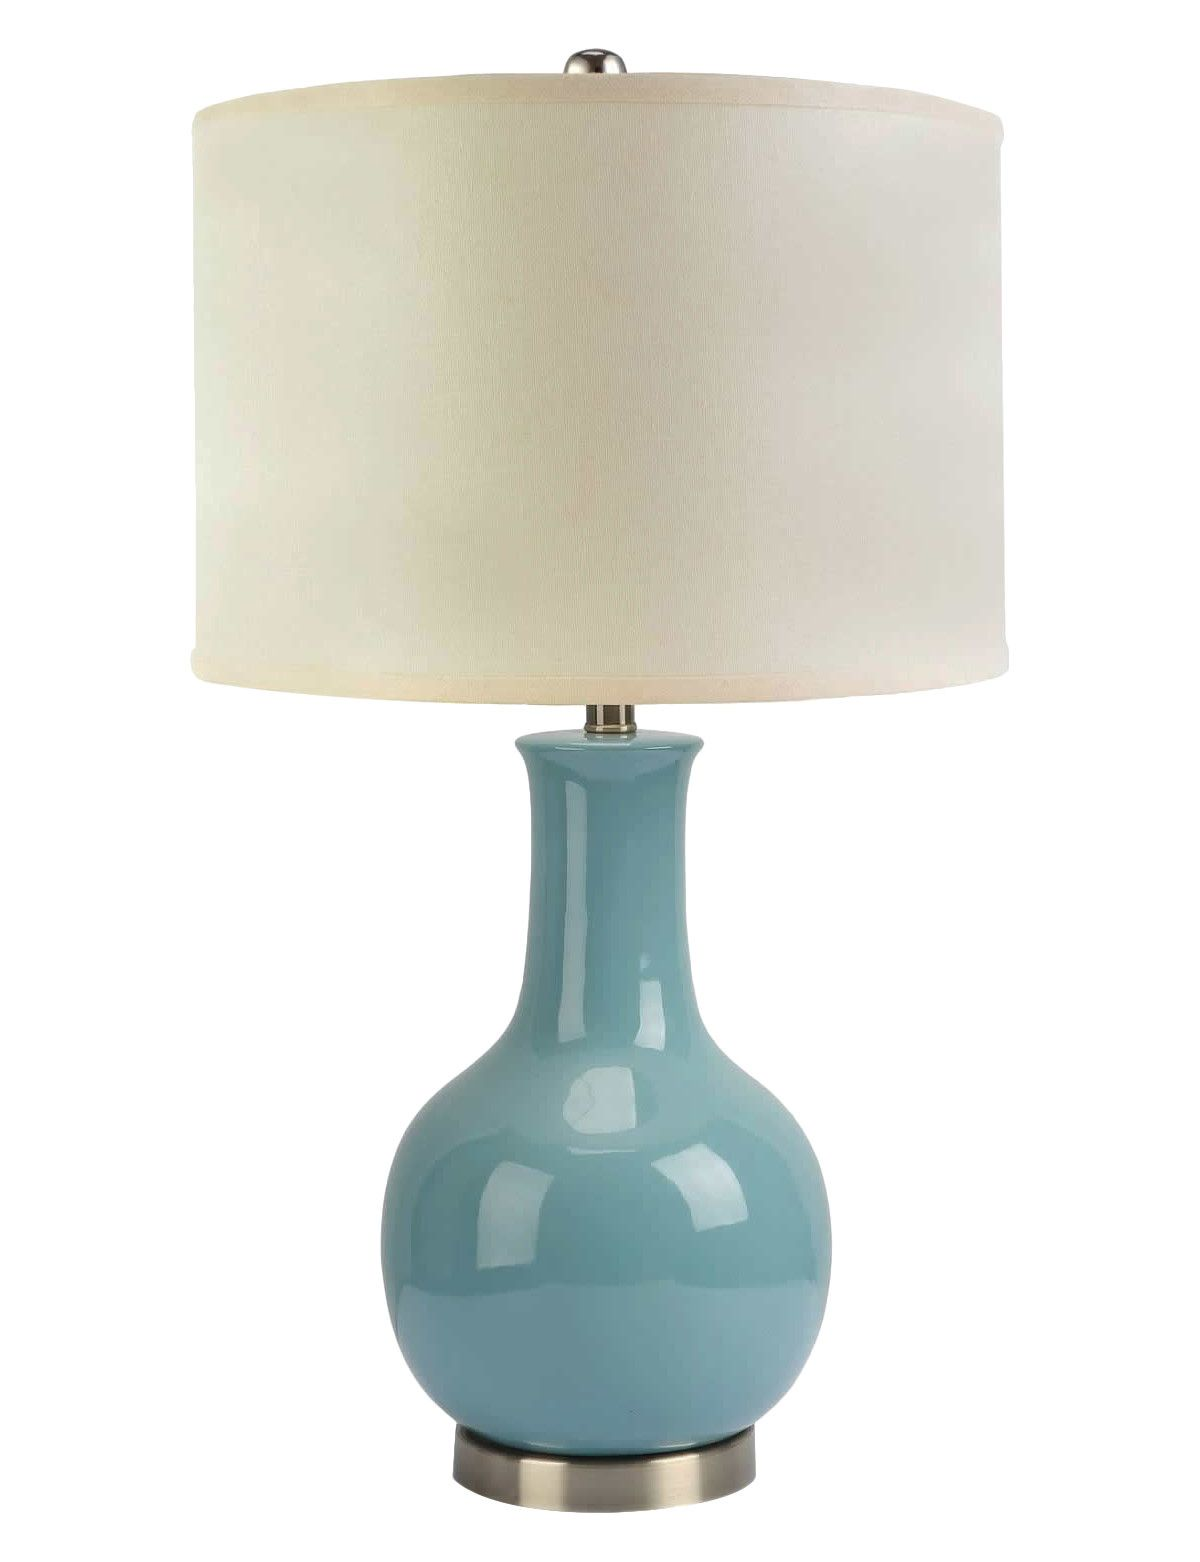 Patroclus maybury 29 5 table lamp